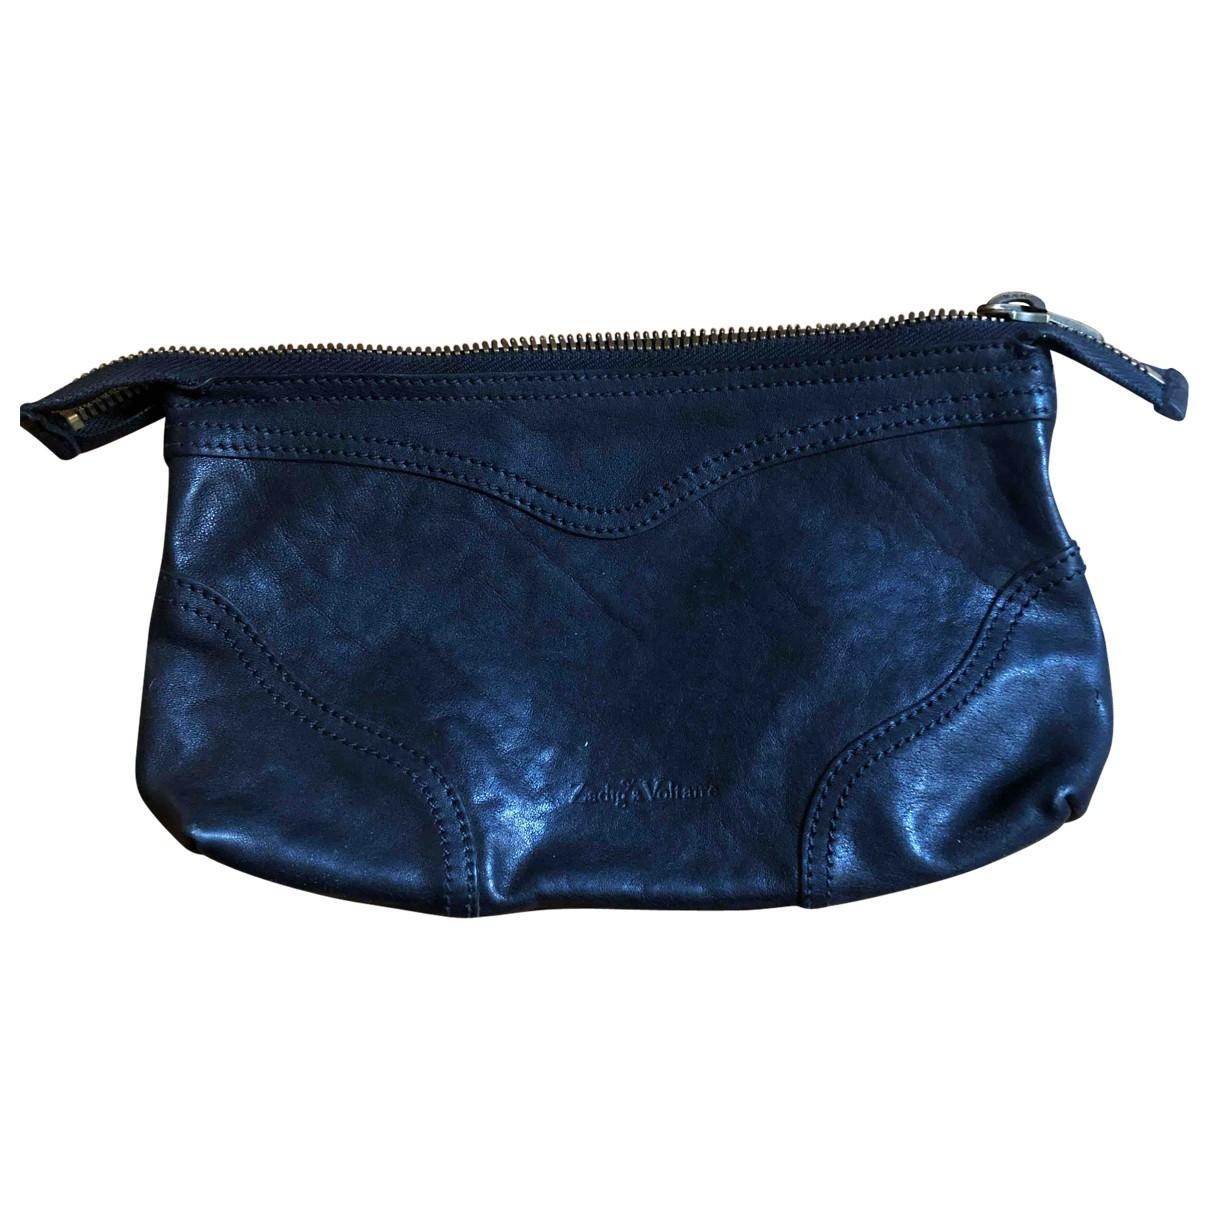 Zadig & Voltaire \N Black Leather Clutch bag for Women \N